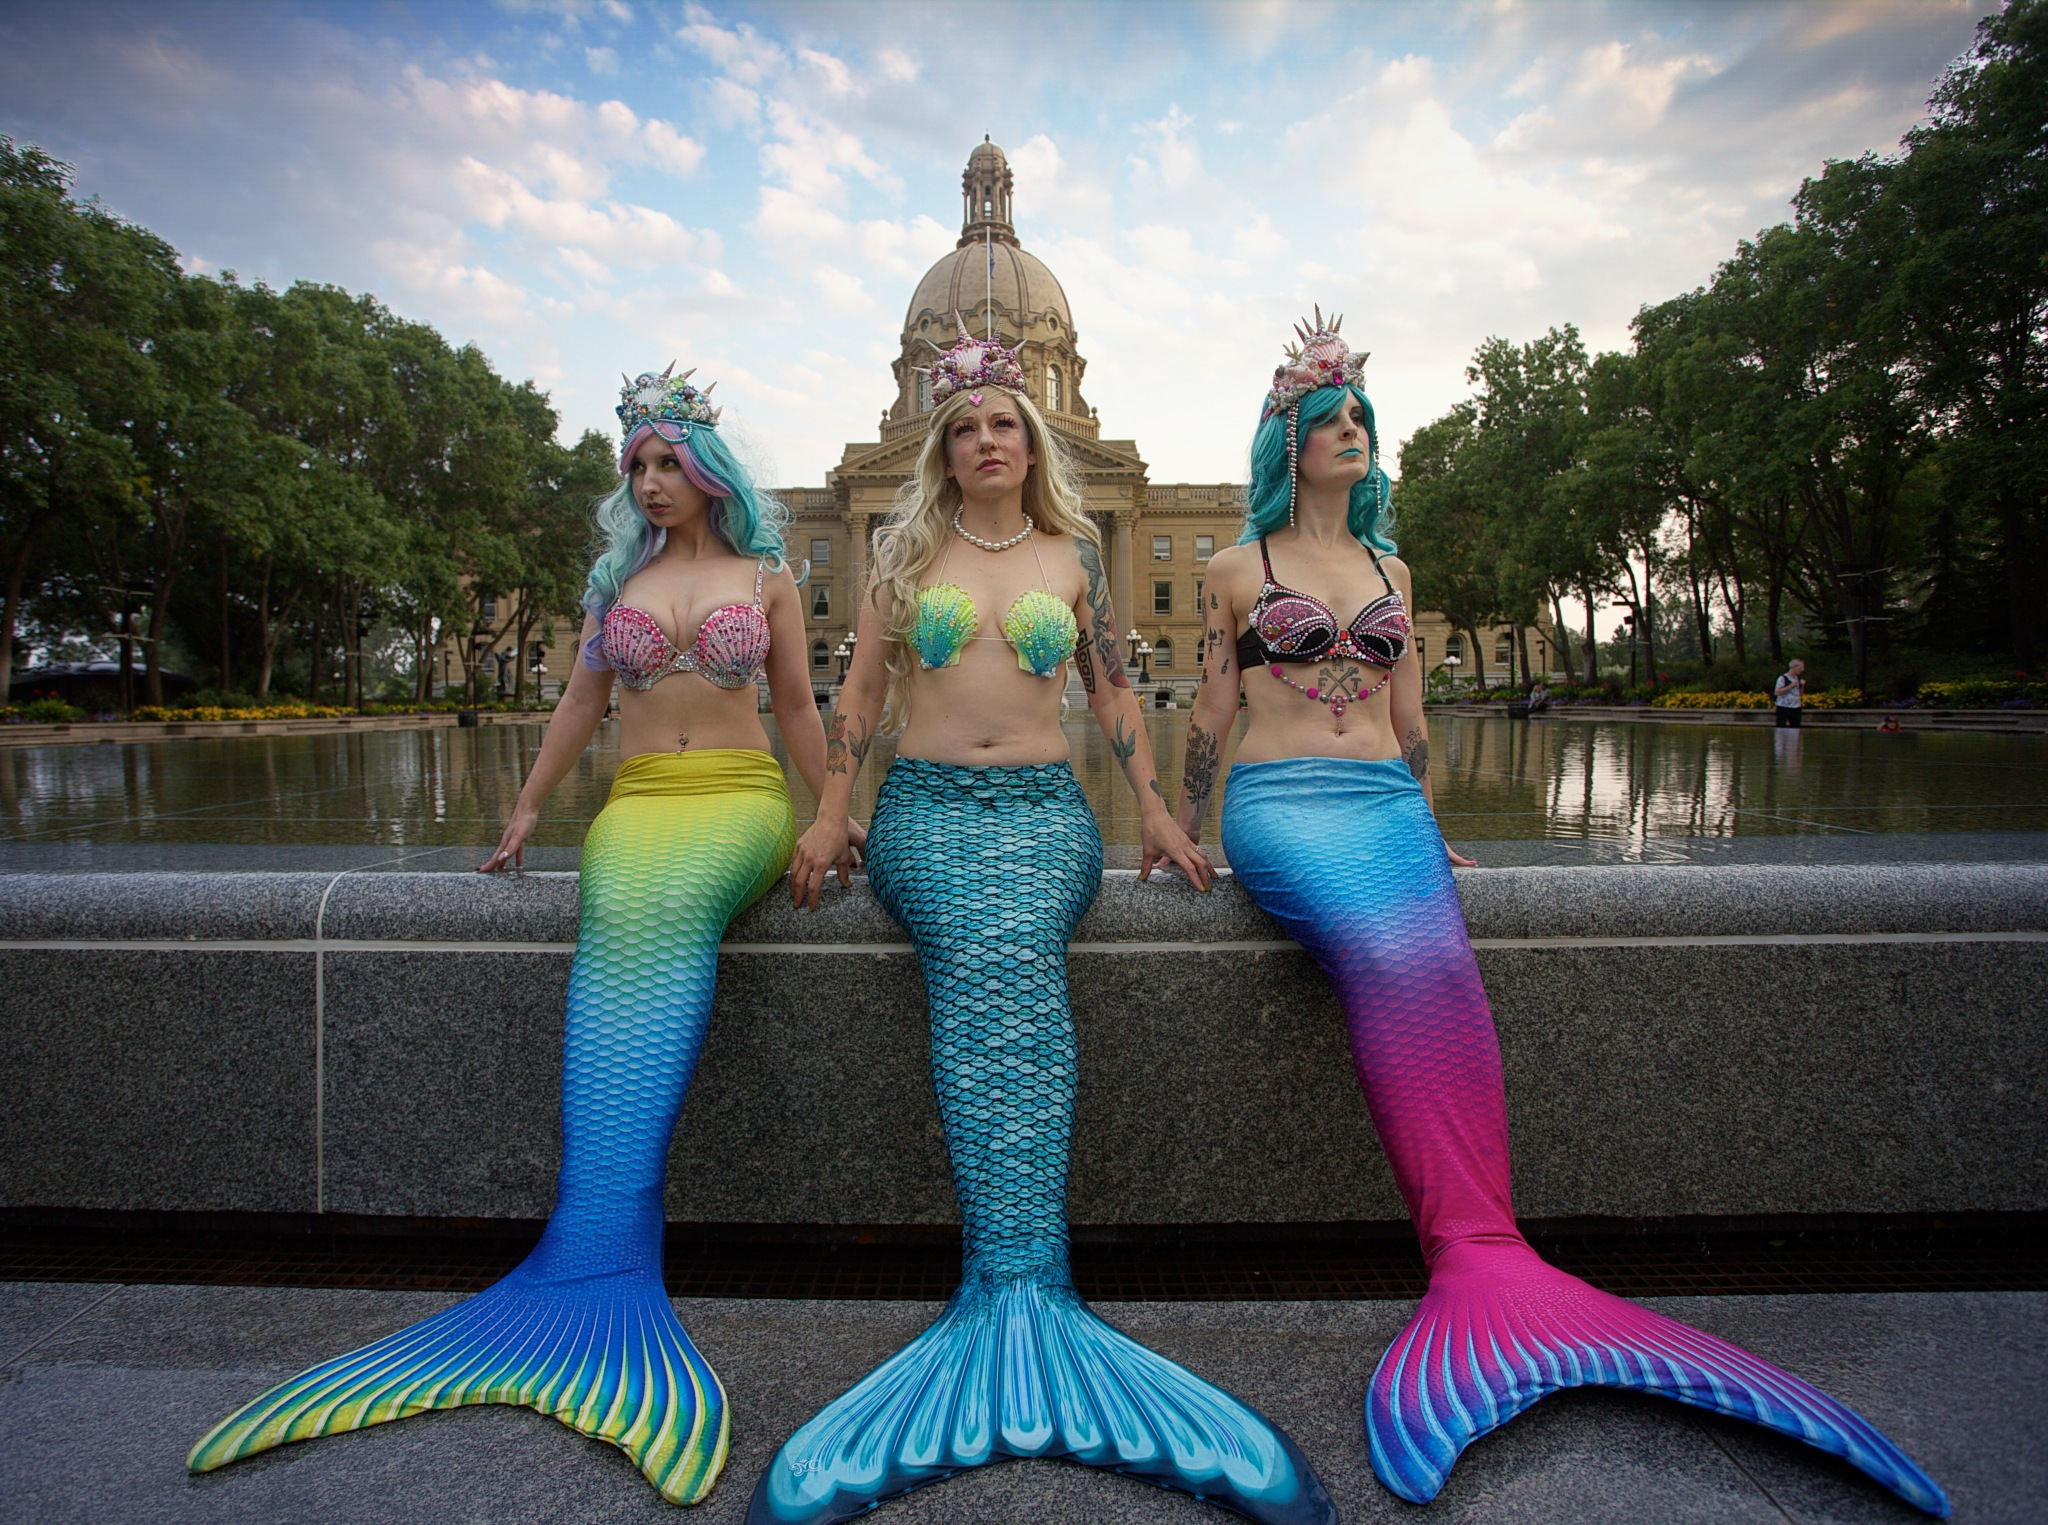 Mermaids are real by jeffdwoodward